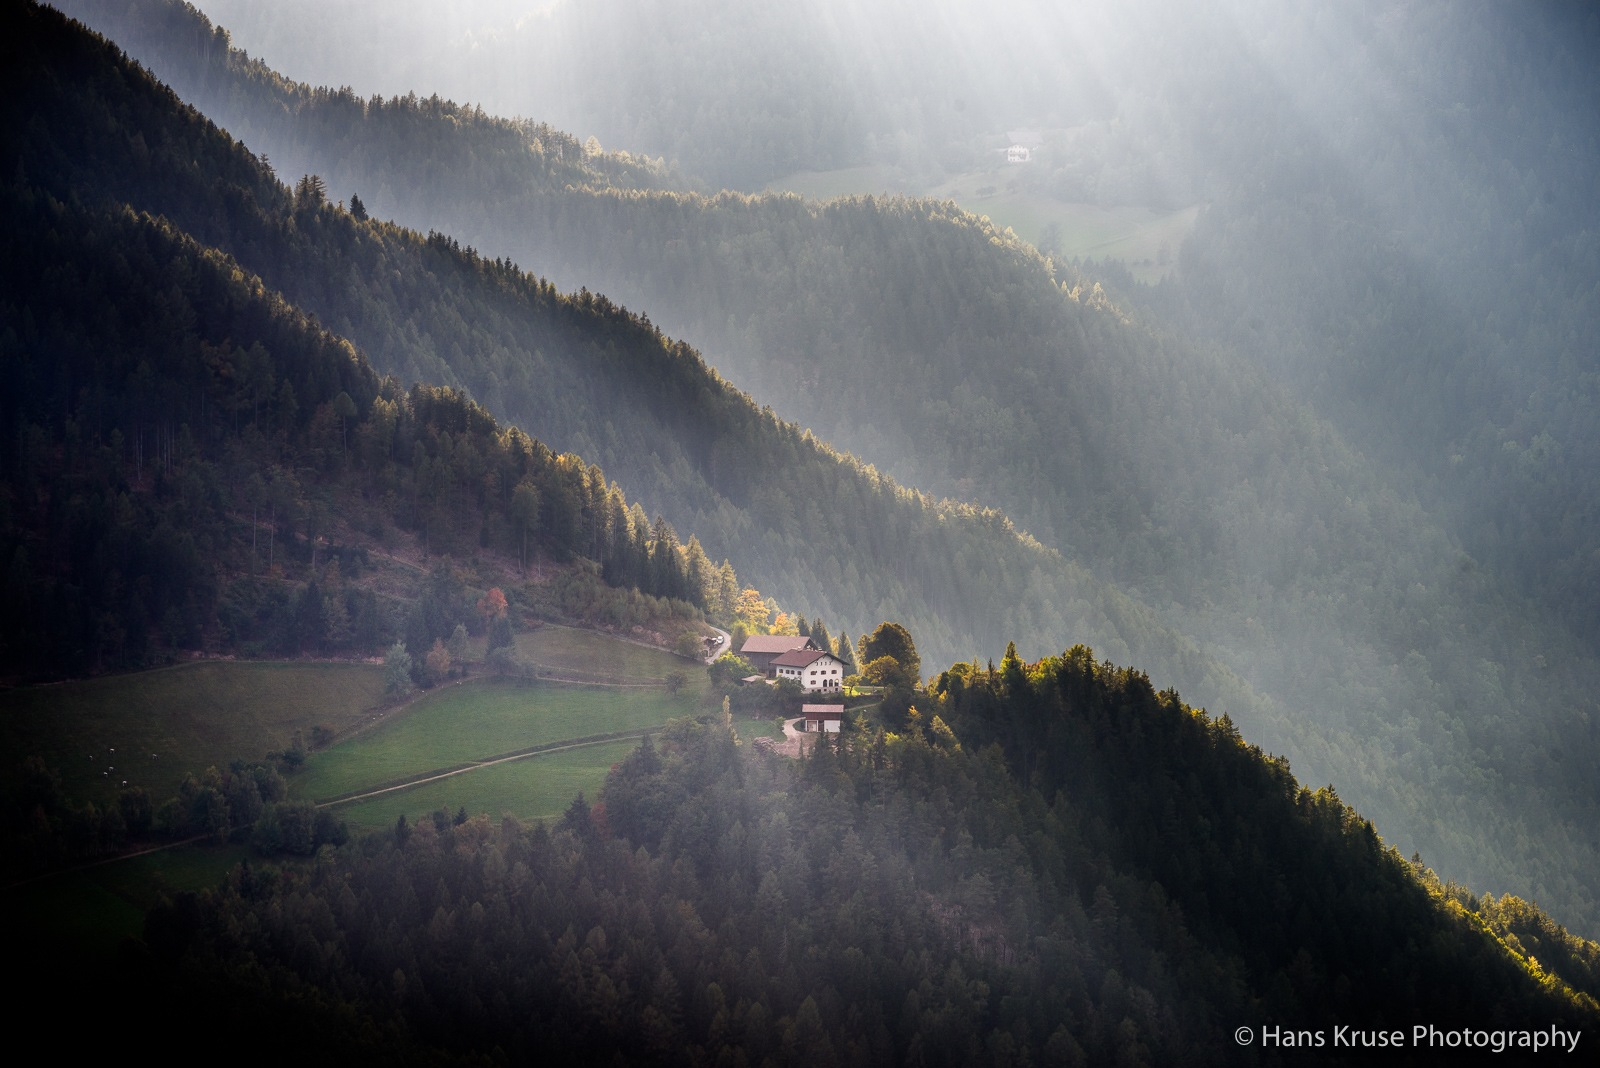 Living in the mountains by Hans Kruse